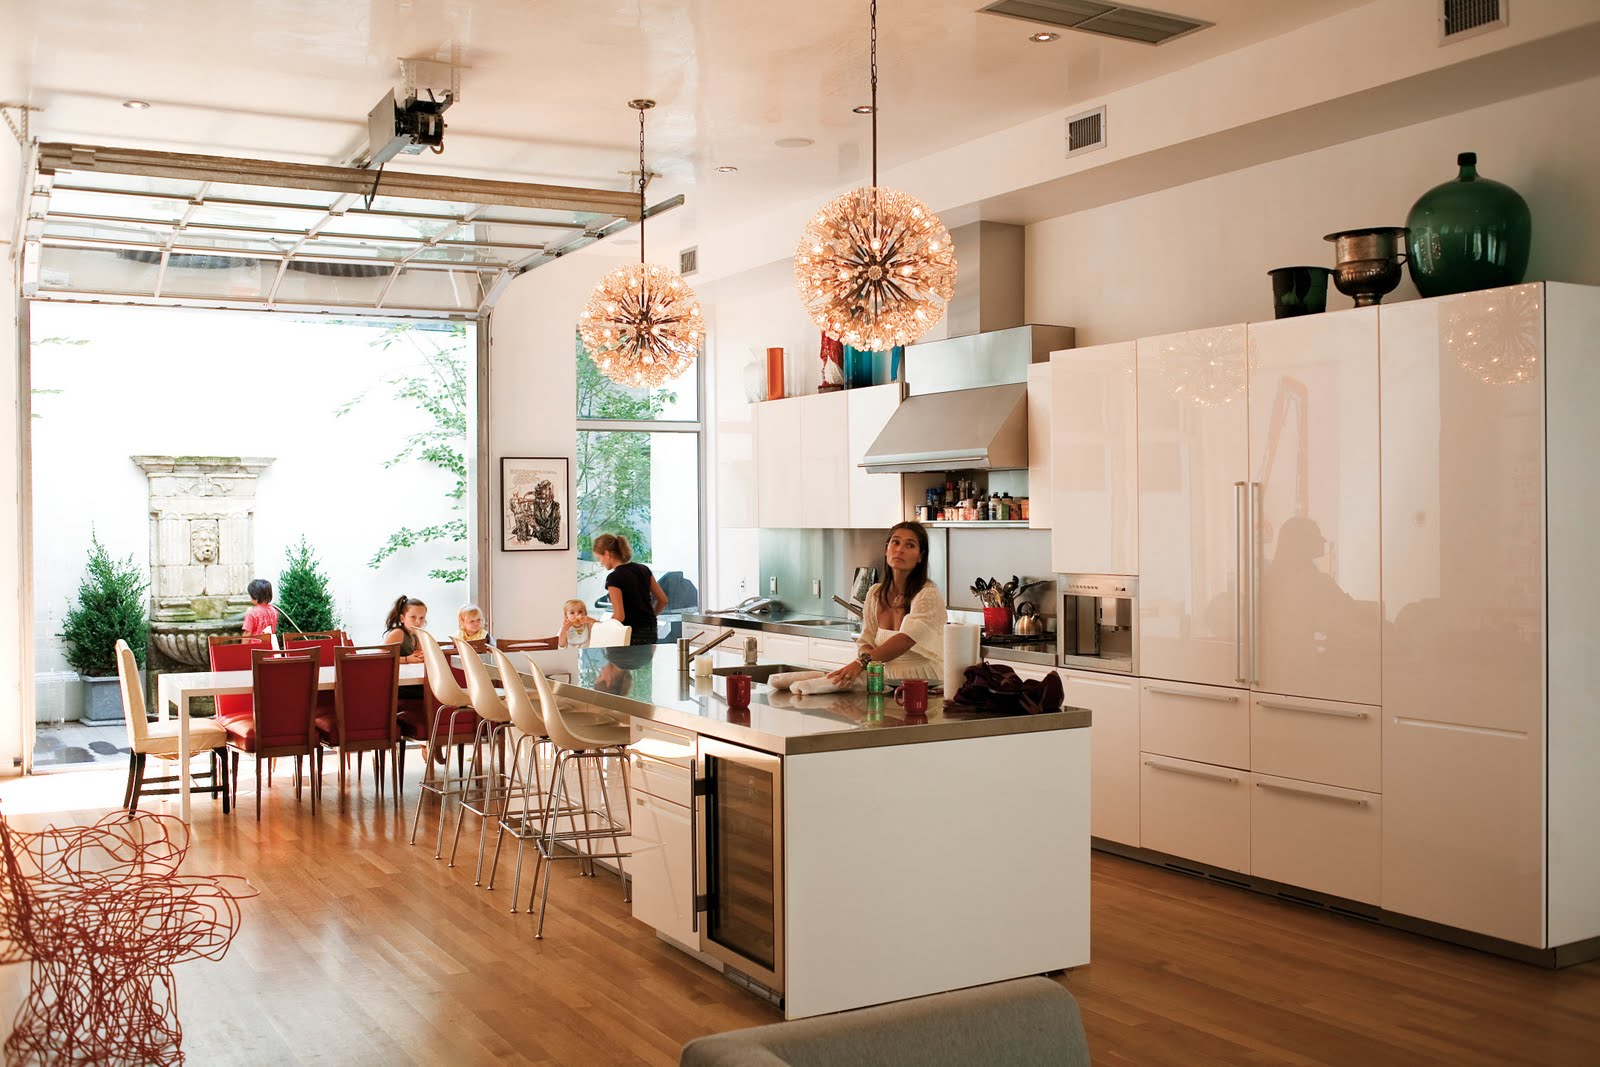 The North Elevation Review Downtown Chic By Robert Cortney Novogratz